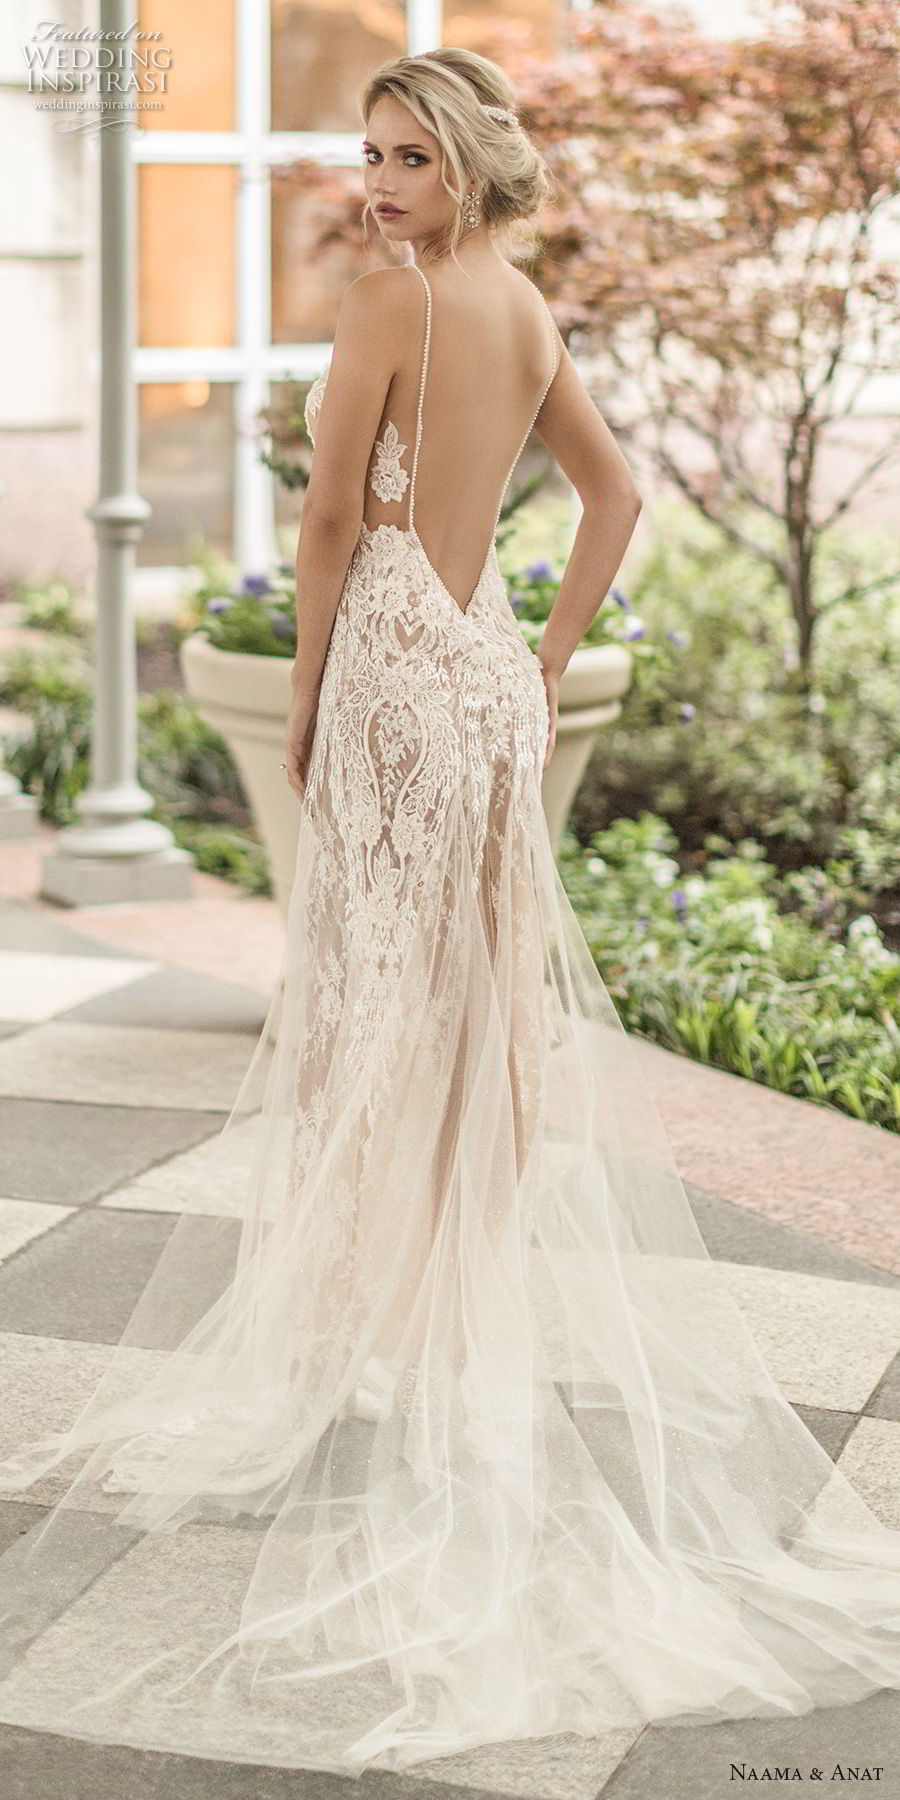 naama anat spring 2019 bridal sleeveless with strap deep v neck full embellishment sexy glamorous sheath wedding dress low open back chapel train (4) bv